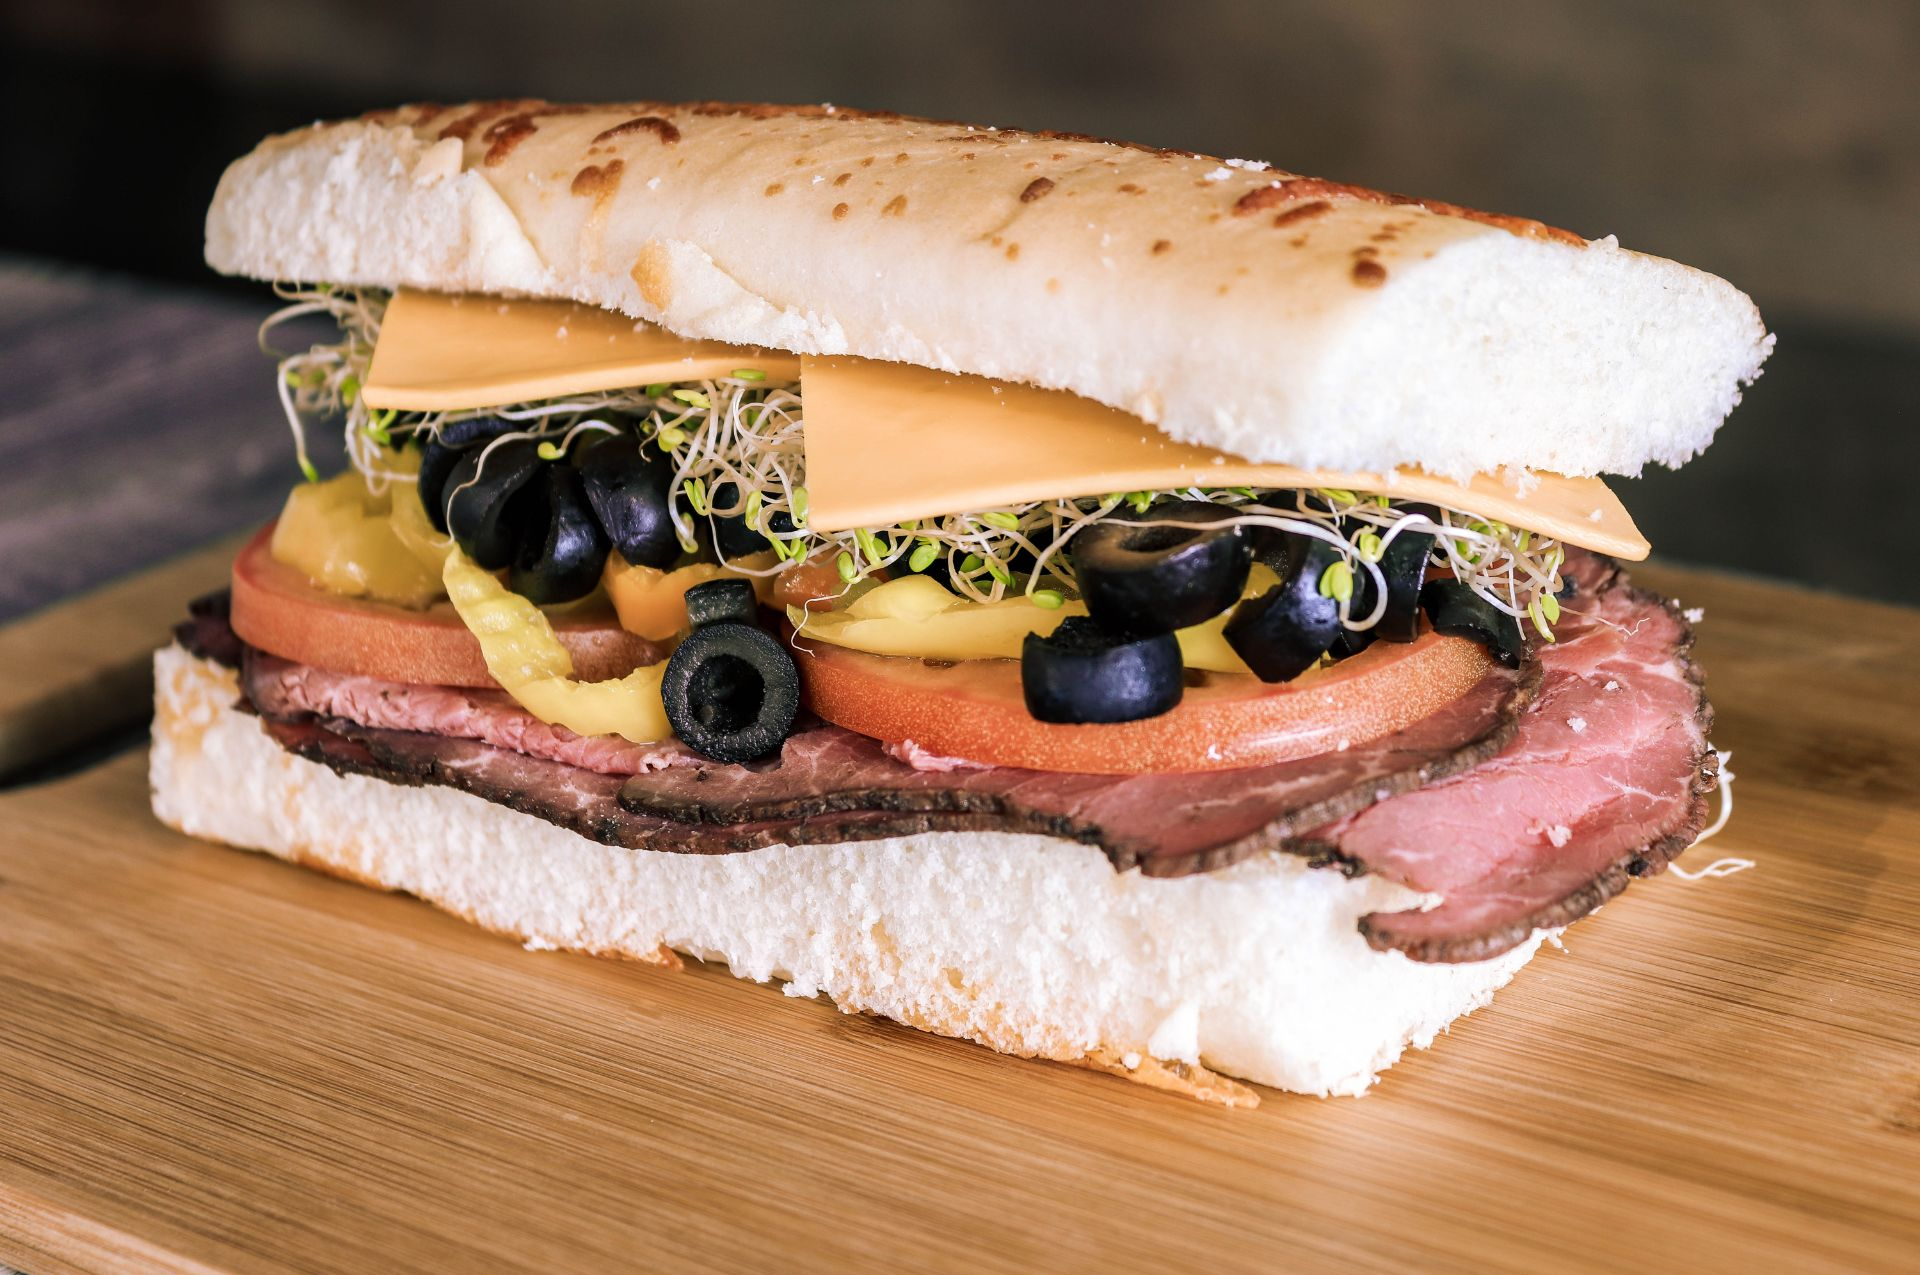 The rum runner. Hot Pastrami sandwich with lettuce, tomato, black olives and cheese